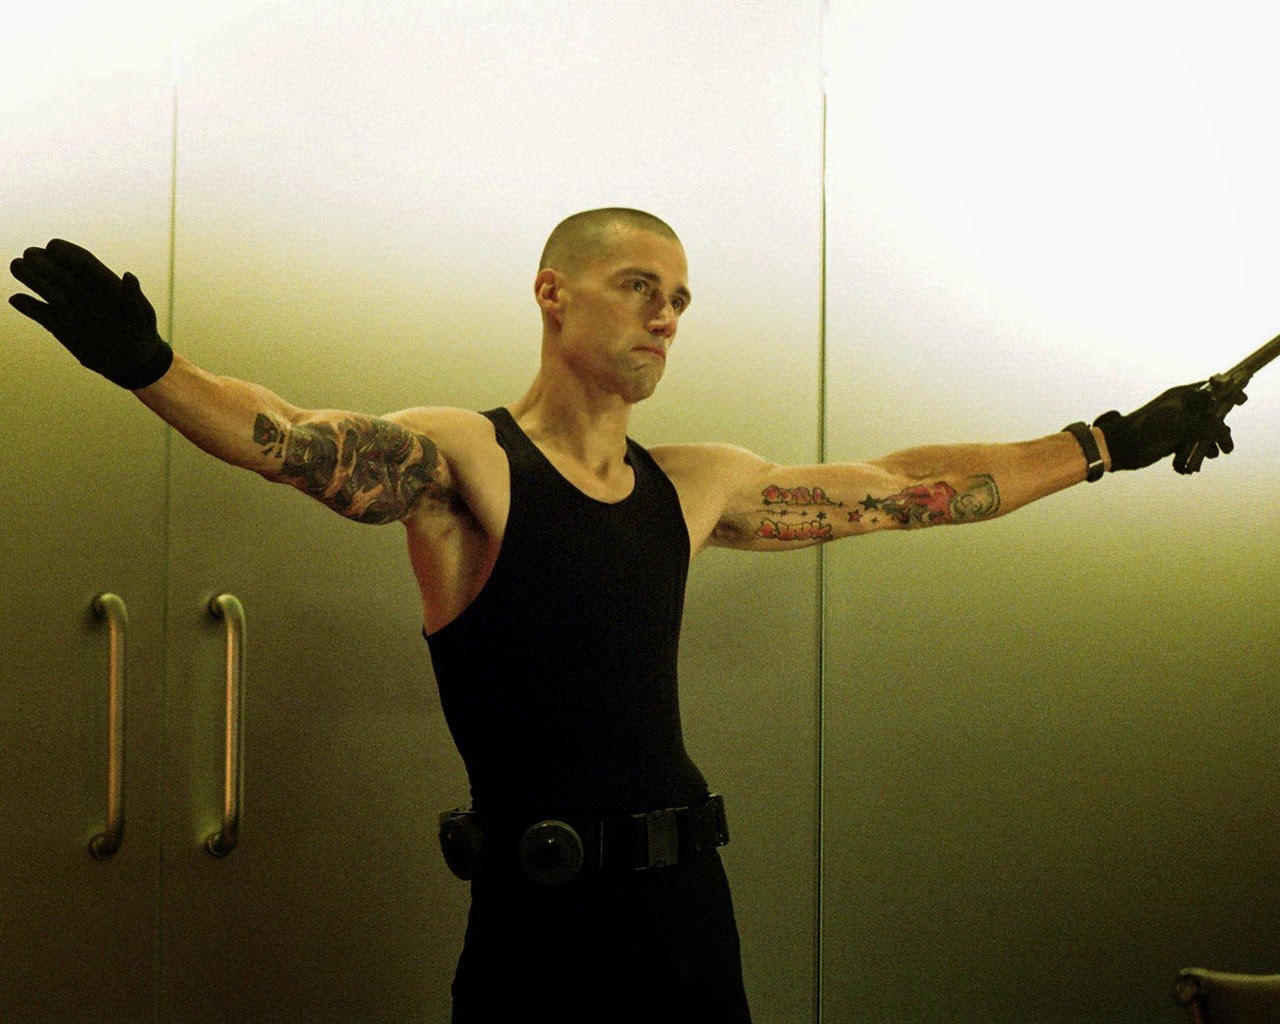 Matthew Fox as the serial killer Picasso in Alex Cross (2012)